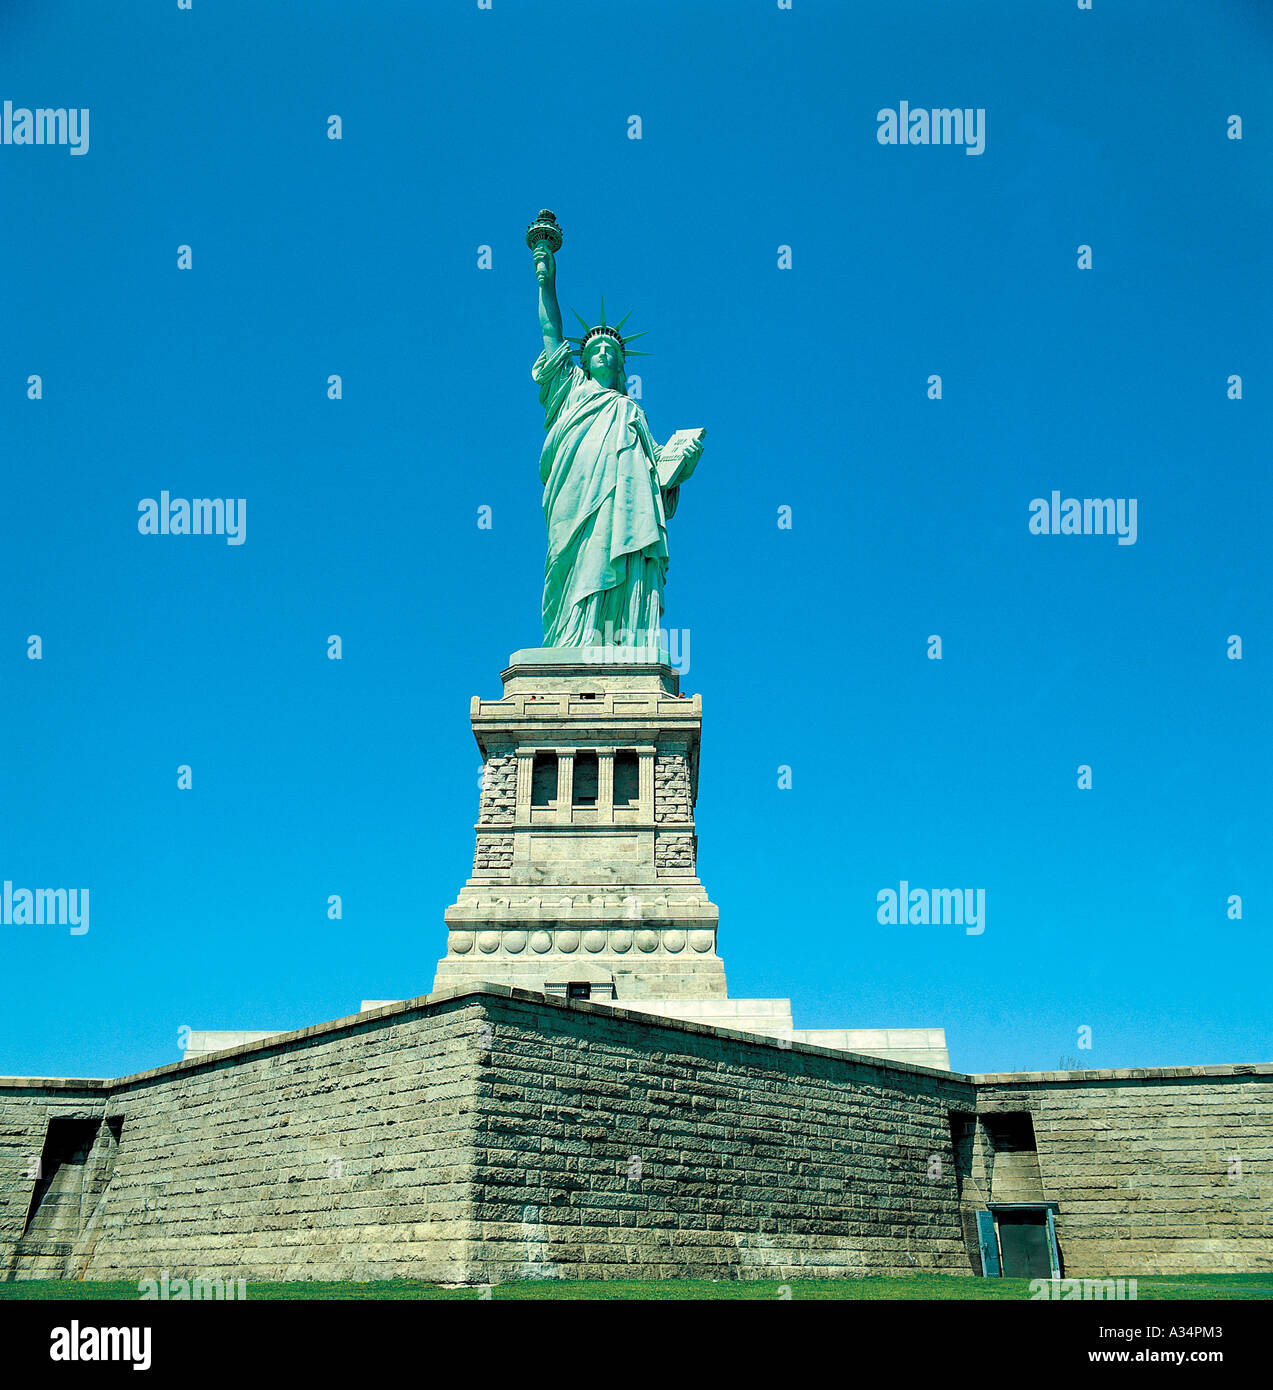 A statue of Liberty is in the USA Stock Photo